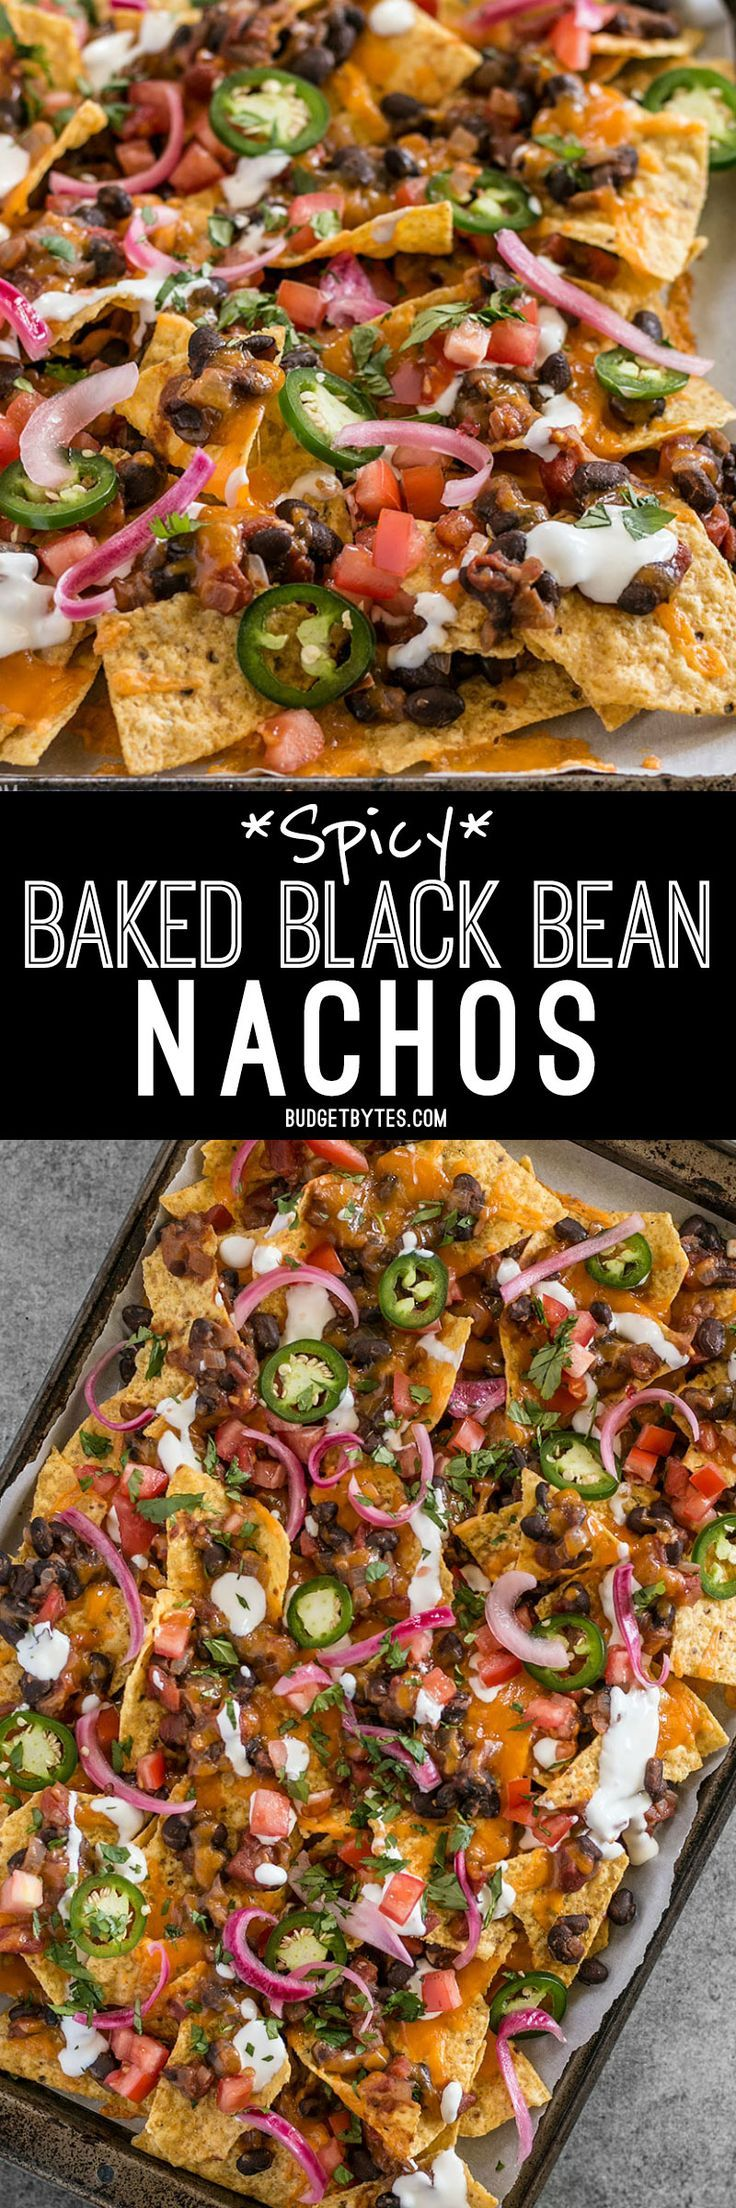 For the perfect Spicy Baked Black Bean Nachos, layer your chips and toppings for the perfect chip-to-topping ratio.